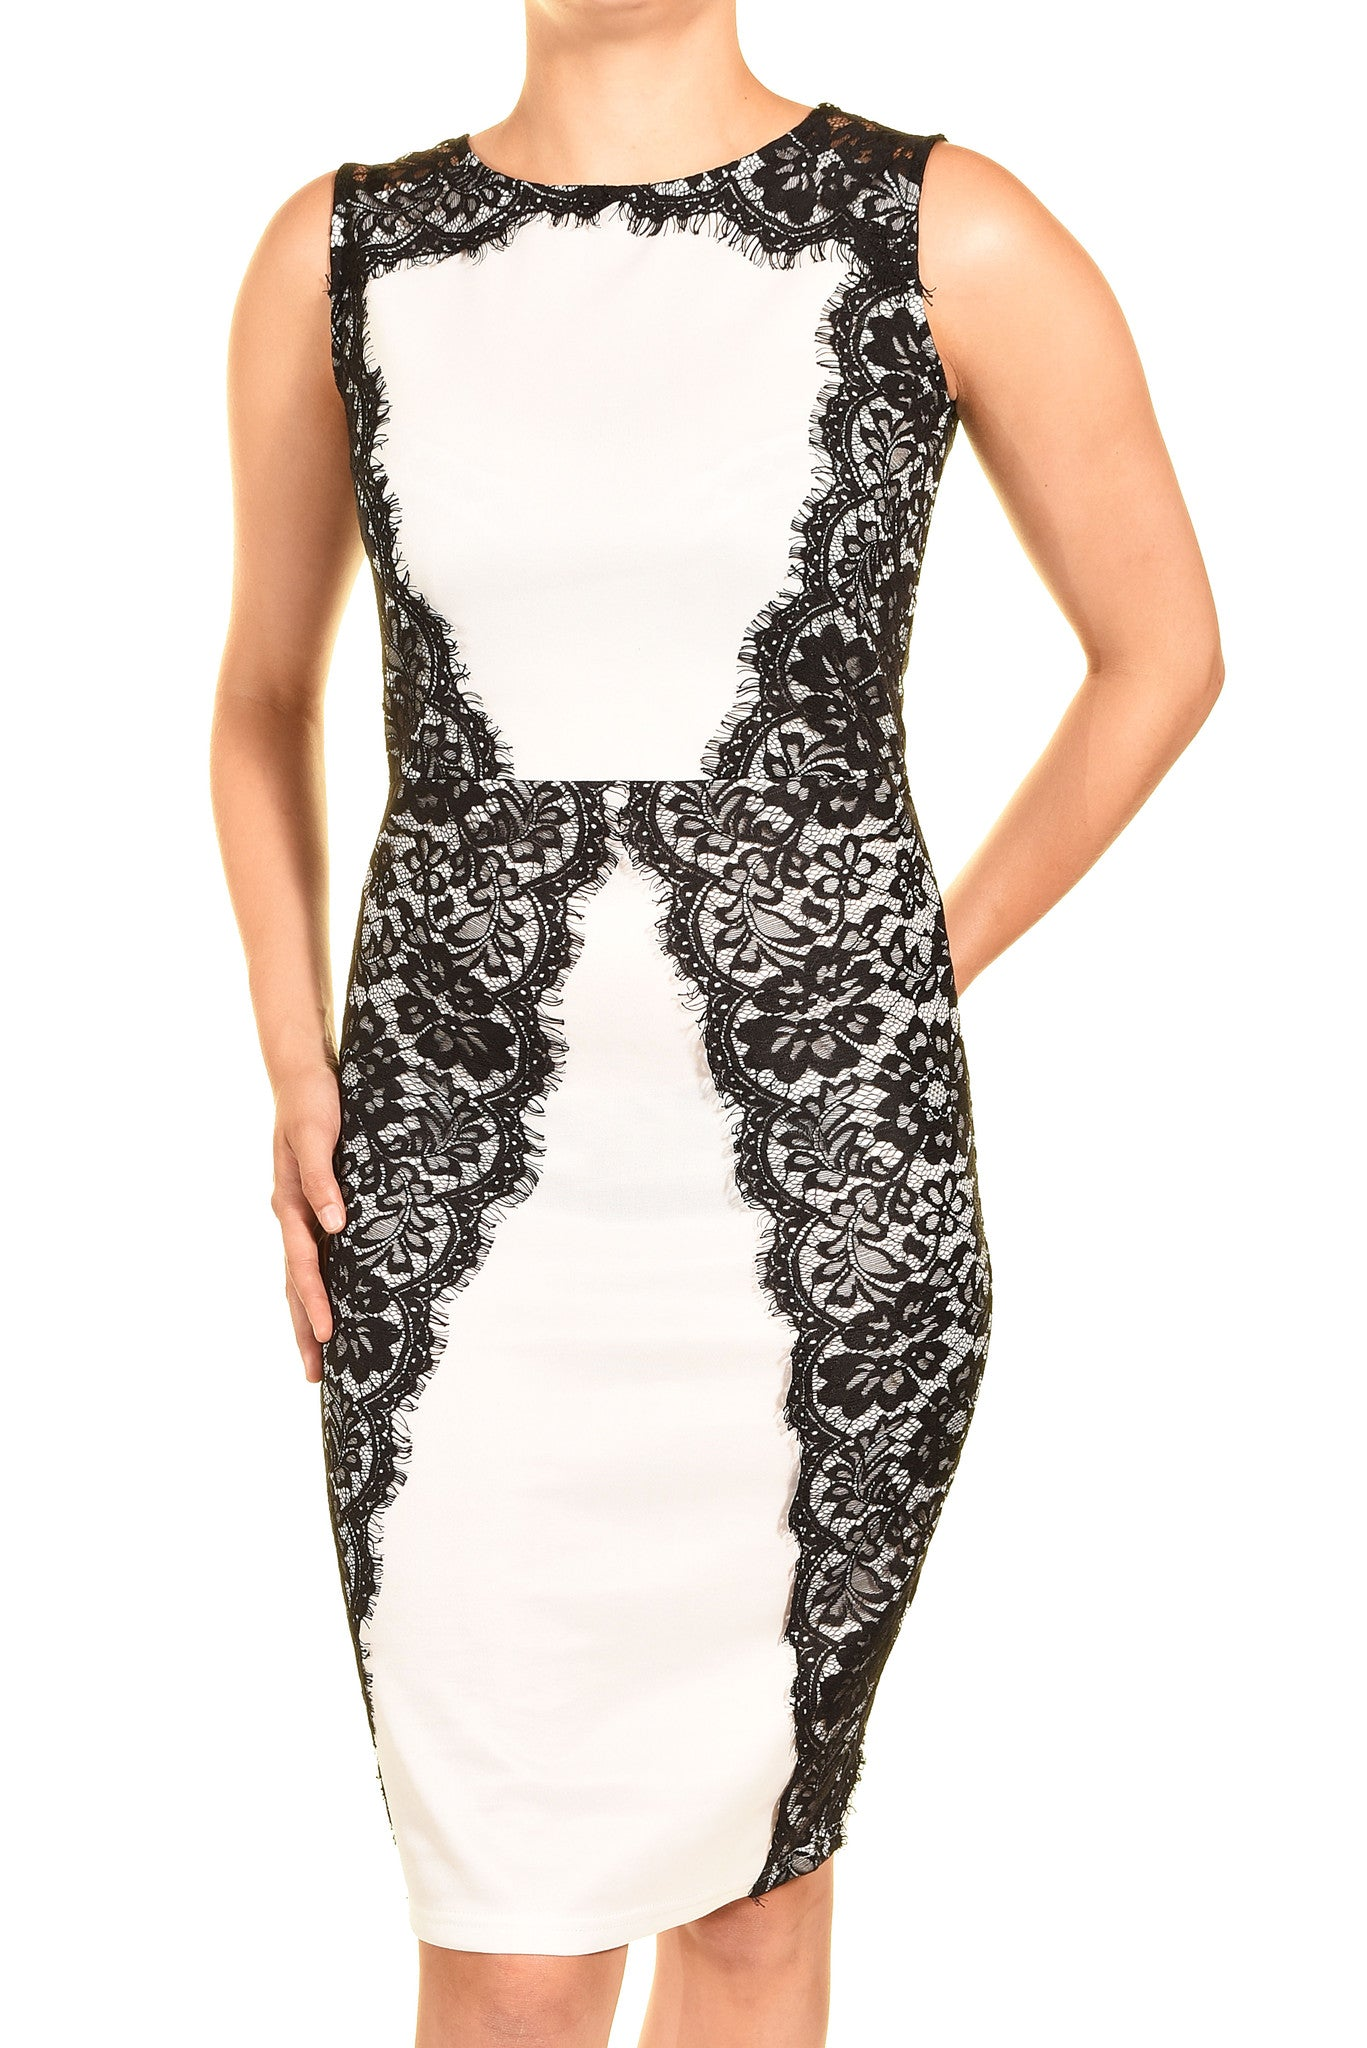 Elar Lace Overlay Cocktail Dress (White Black Lace),Dress,Elar - Discount Divas